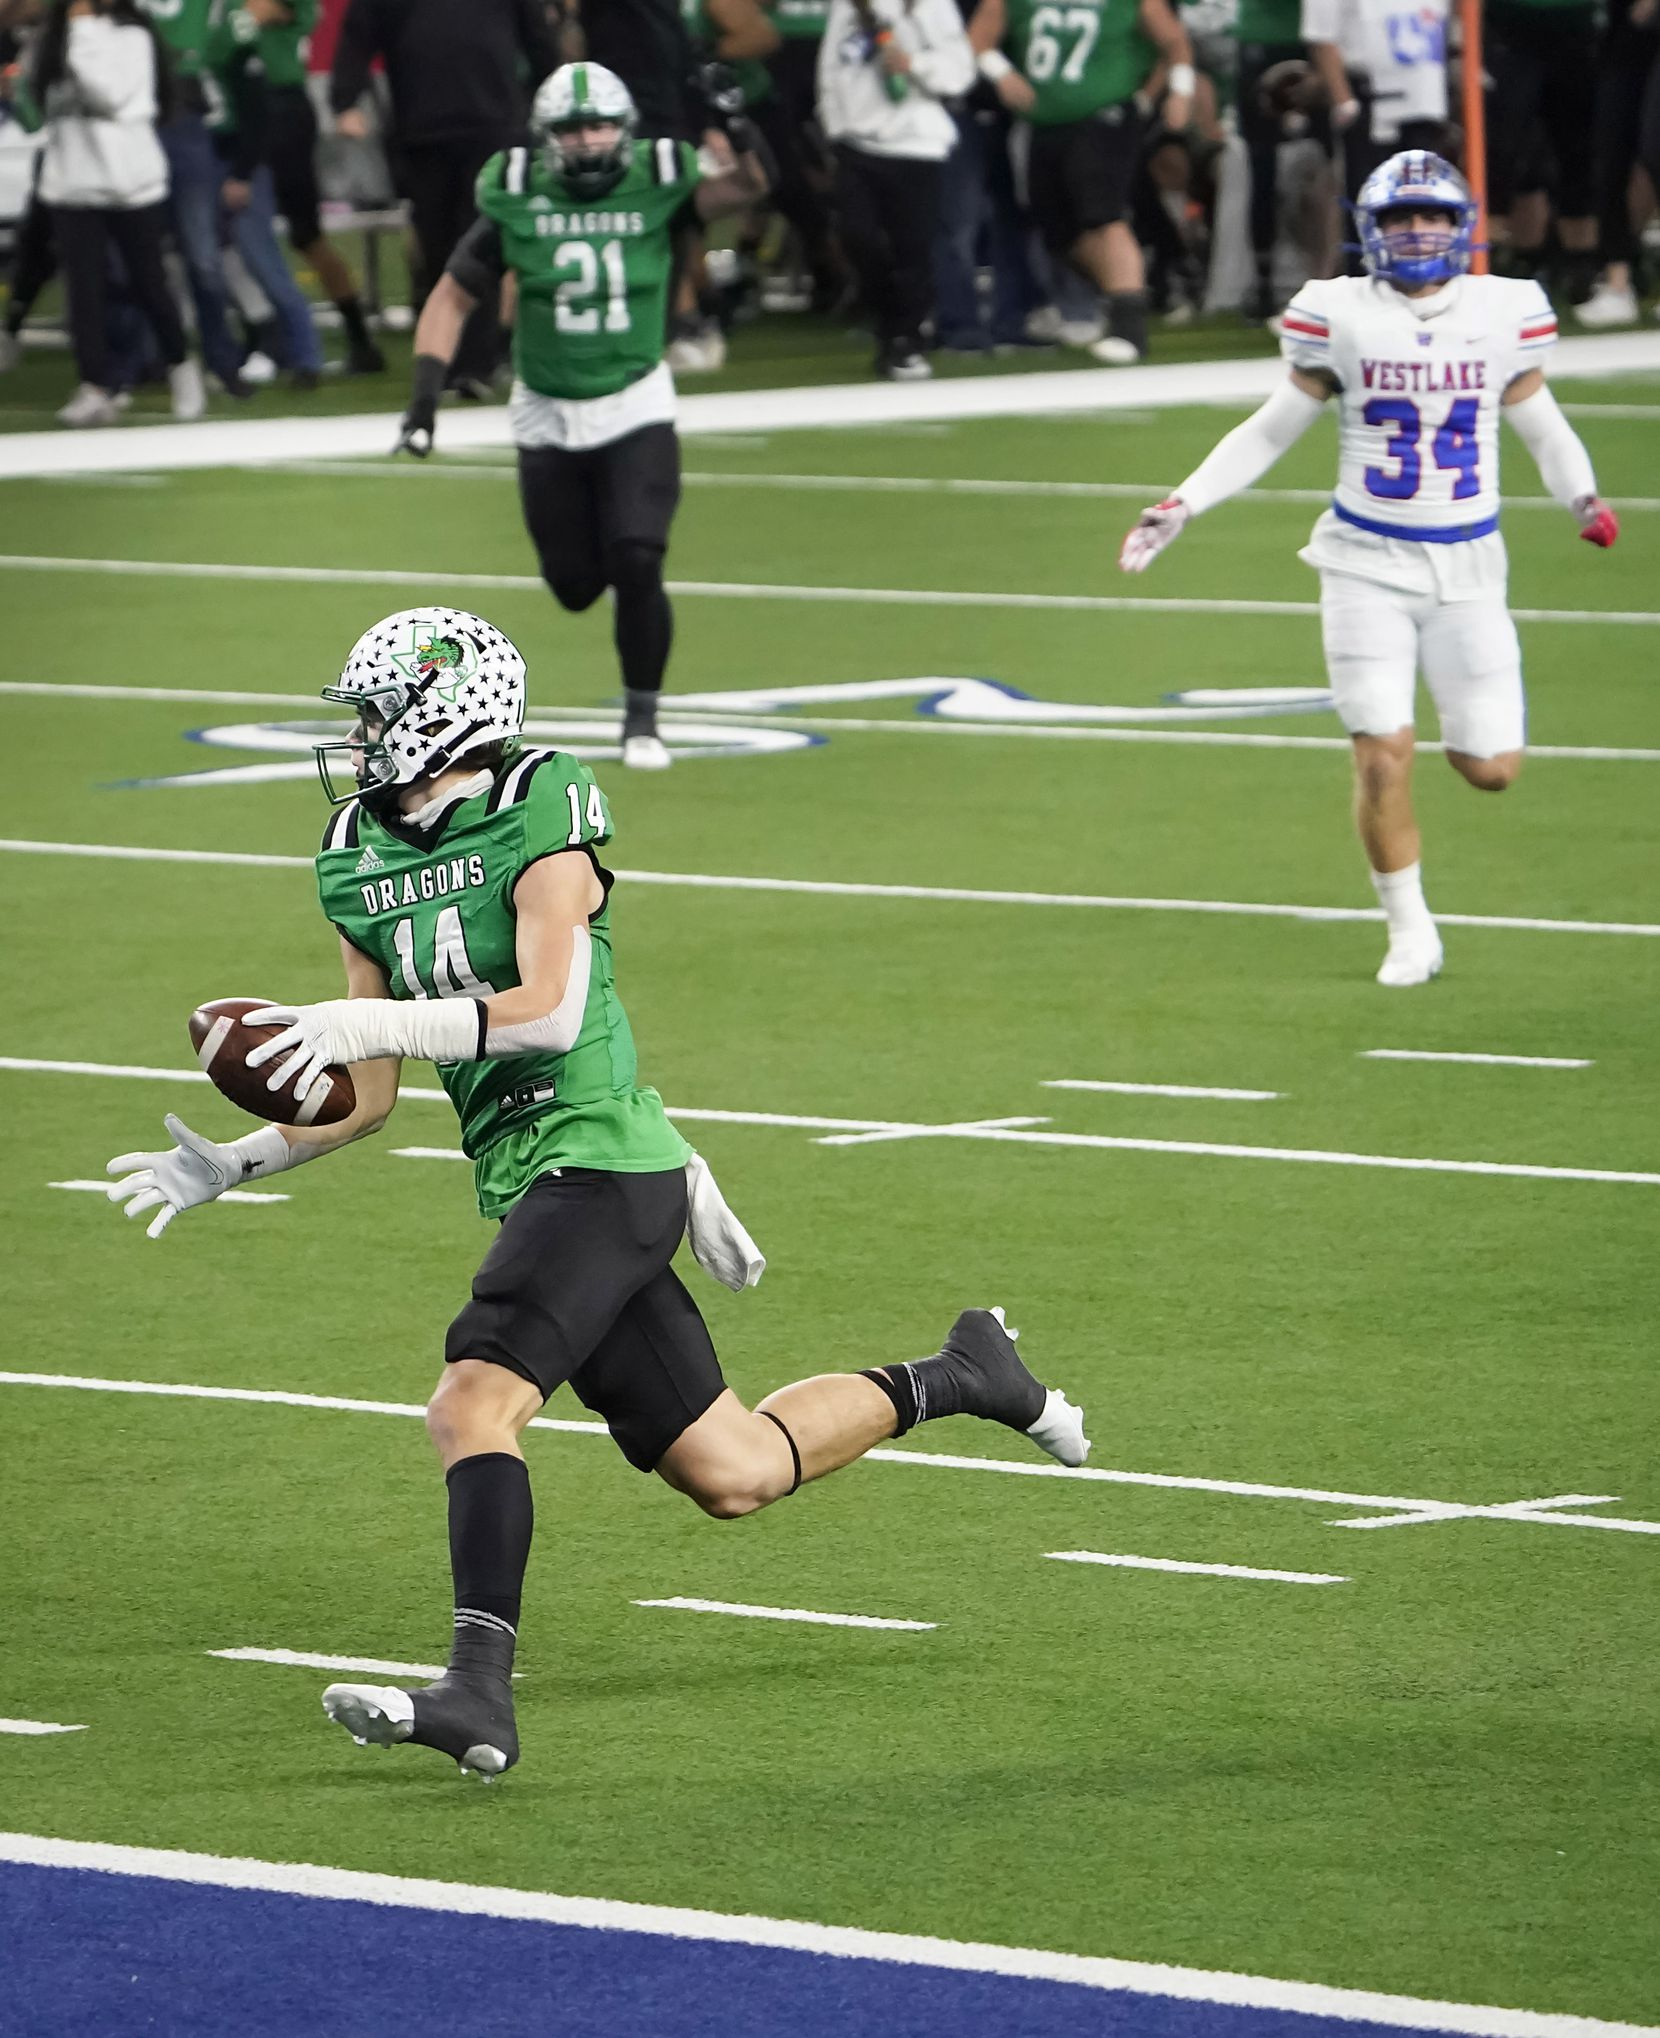 Southlake Carroll wide receiver Brady Boyd (14) scores on a 49-yard touchdown play during the first quarter of the Class 6A Division I state football championship game against Austin Westlake at AT&T Stadium on Saturday, Jan. 16, 2021, in Arlington, Texas.